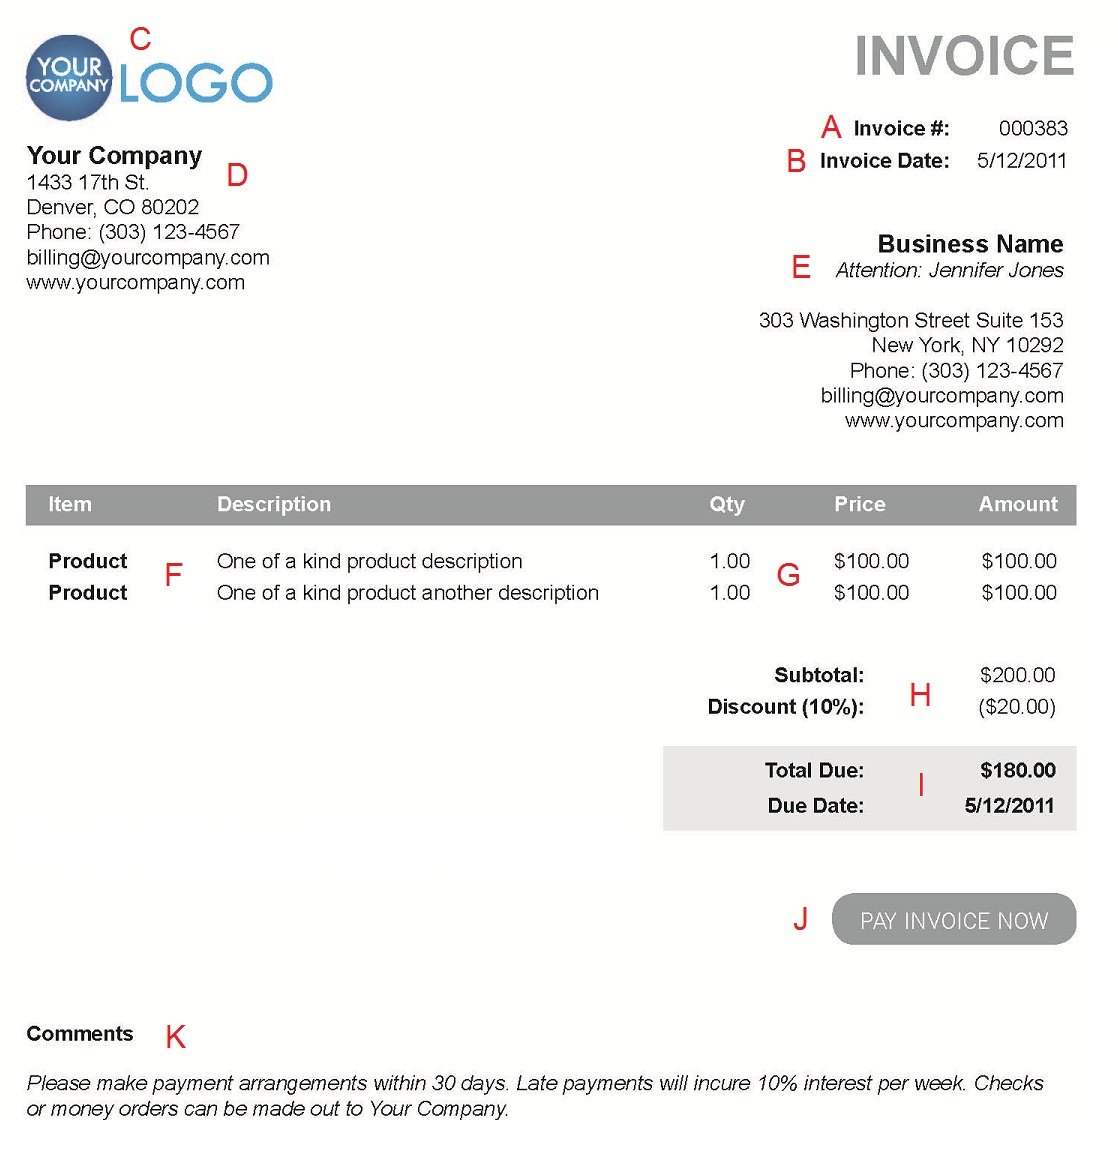 Atvingus  Terrific The  Different Sections Of An Electronic Payment Invoice With Exquisite A  With Appealing How To Get Receipts Also Best Receipt Tracker App In Addition Writing A Receipt For Cash Payment And Yahoo Mail Return Receipt As Well As Ups Tracking Number On Receipt Additionally Shop Receipt From Paysimplecom With Atvingus  Exquisite The  Different Sections Of An Electronic Payment Invoice With Appealing A  And Terrific How To Get Receipts Also Best Receipt Tracker App In Addition Writing A Receipt For Cash Payment From Paysimplecom